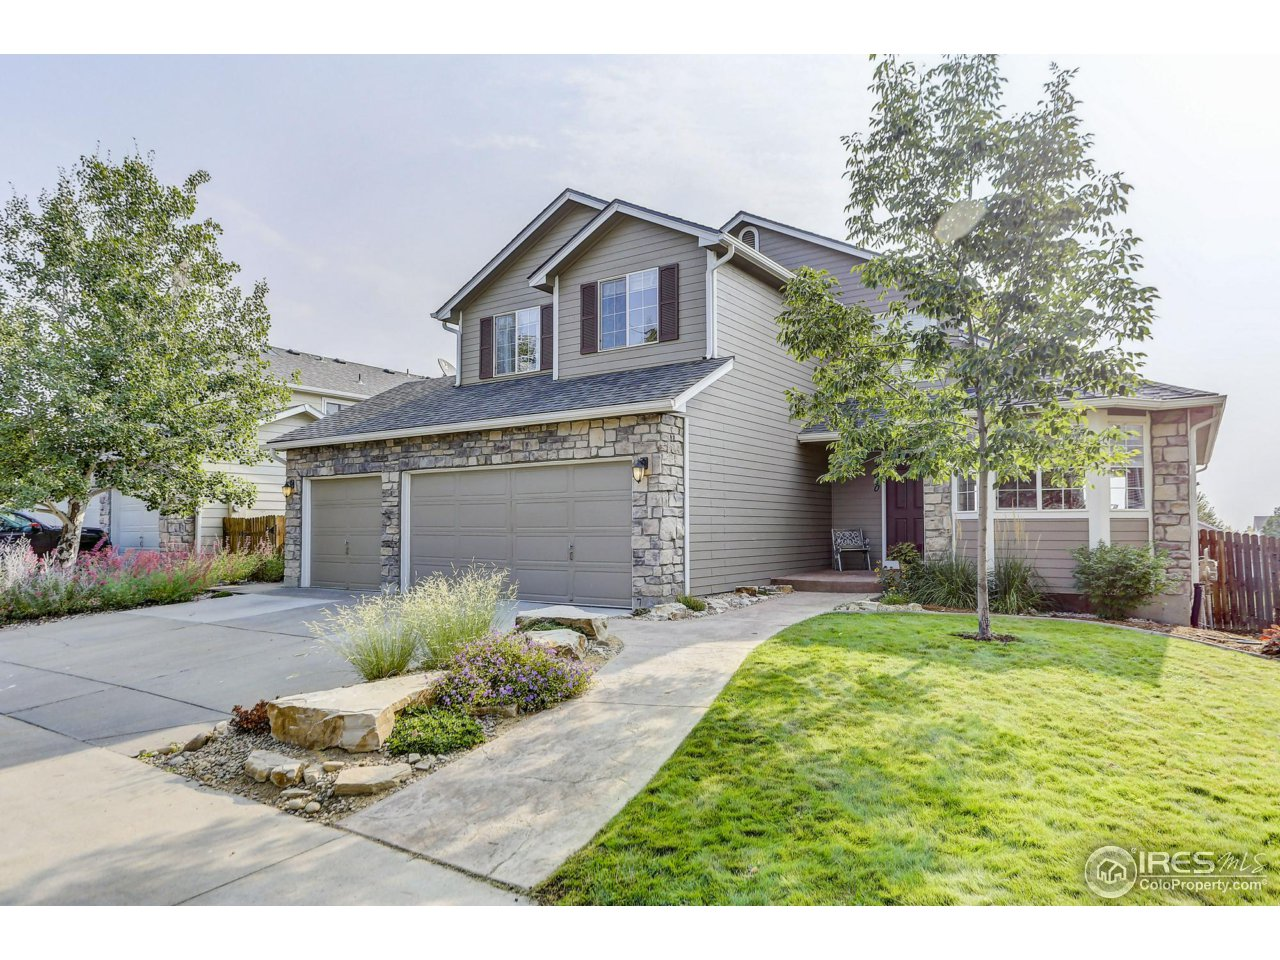 7050 Avondale Rd, Fort Collins CO 80525